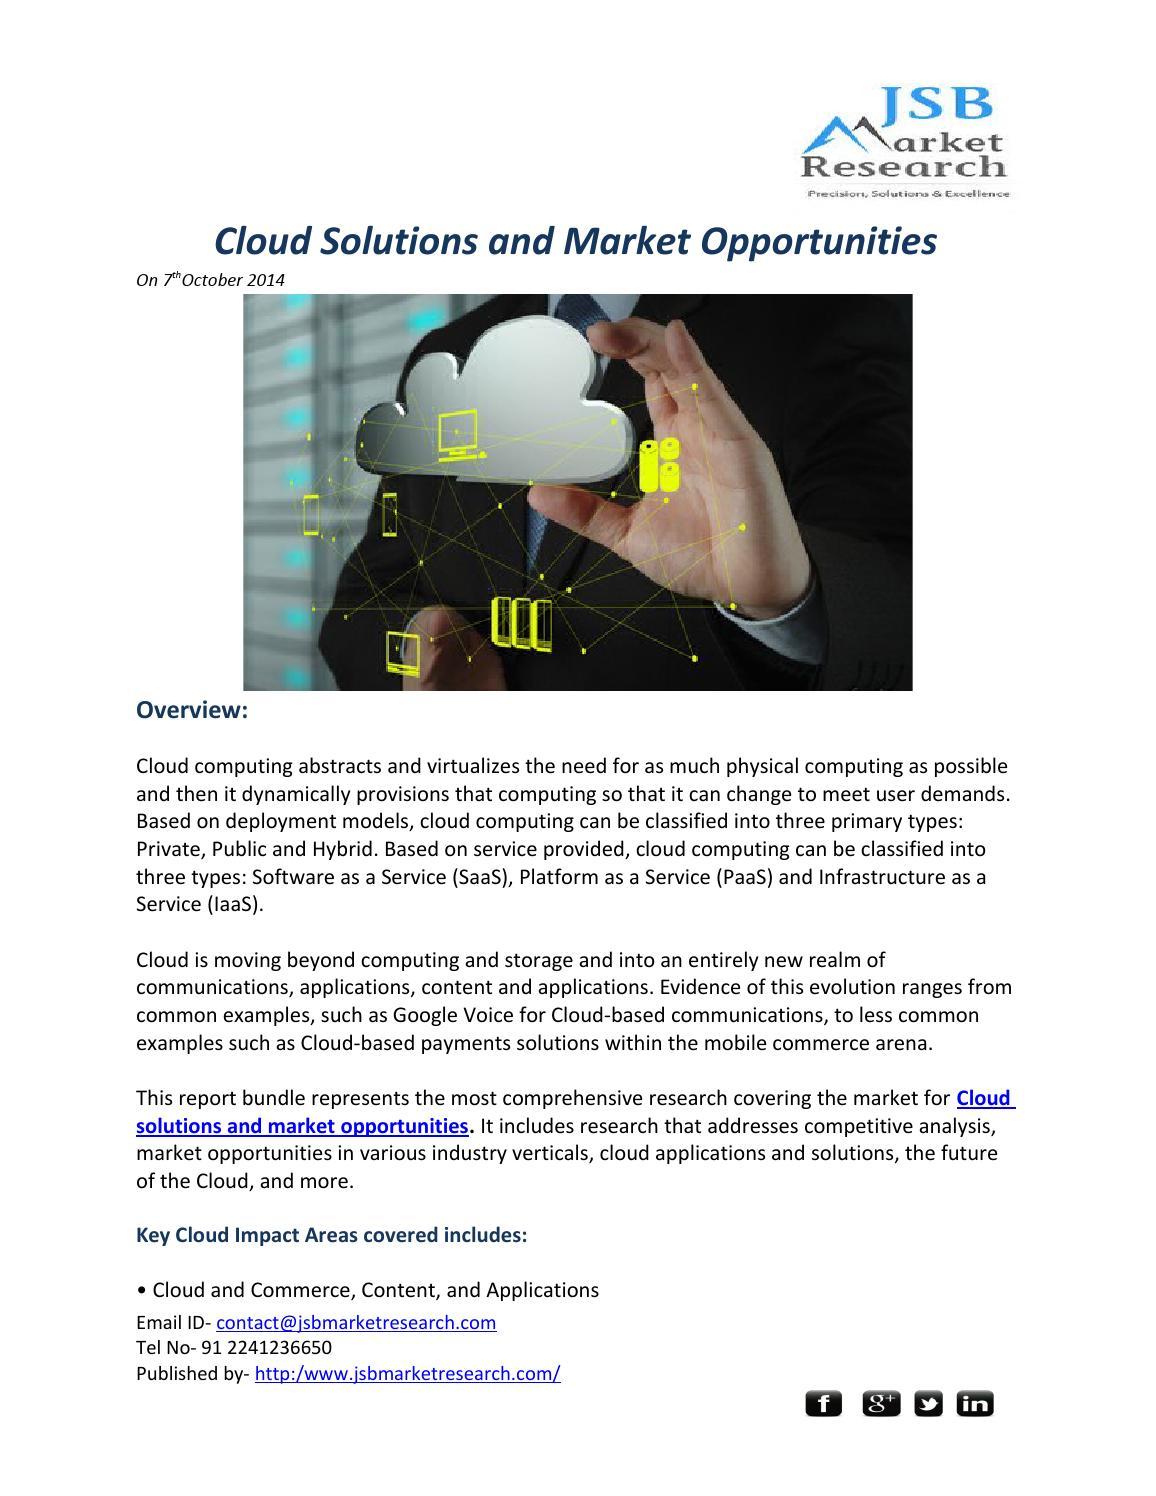 JSB Market Research Cloud solutions and market opportunities by